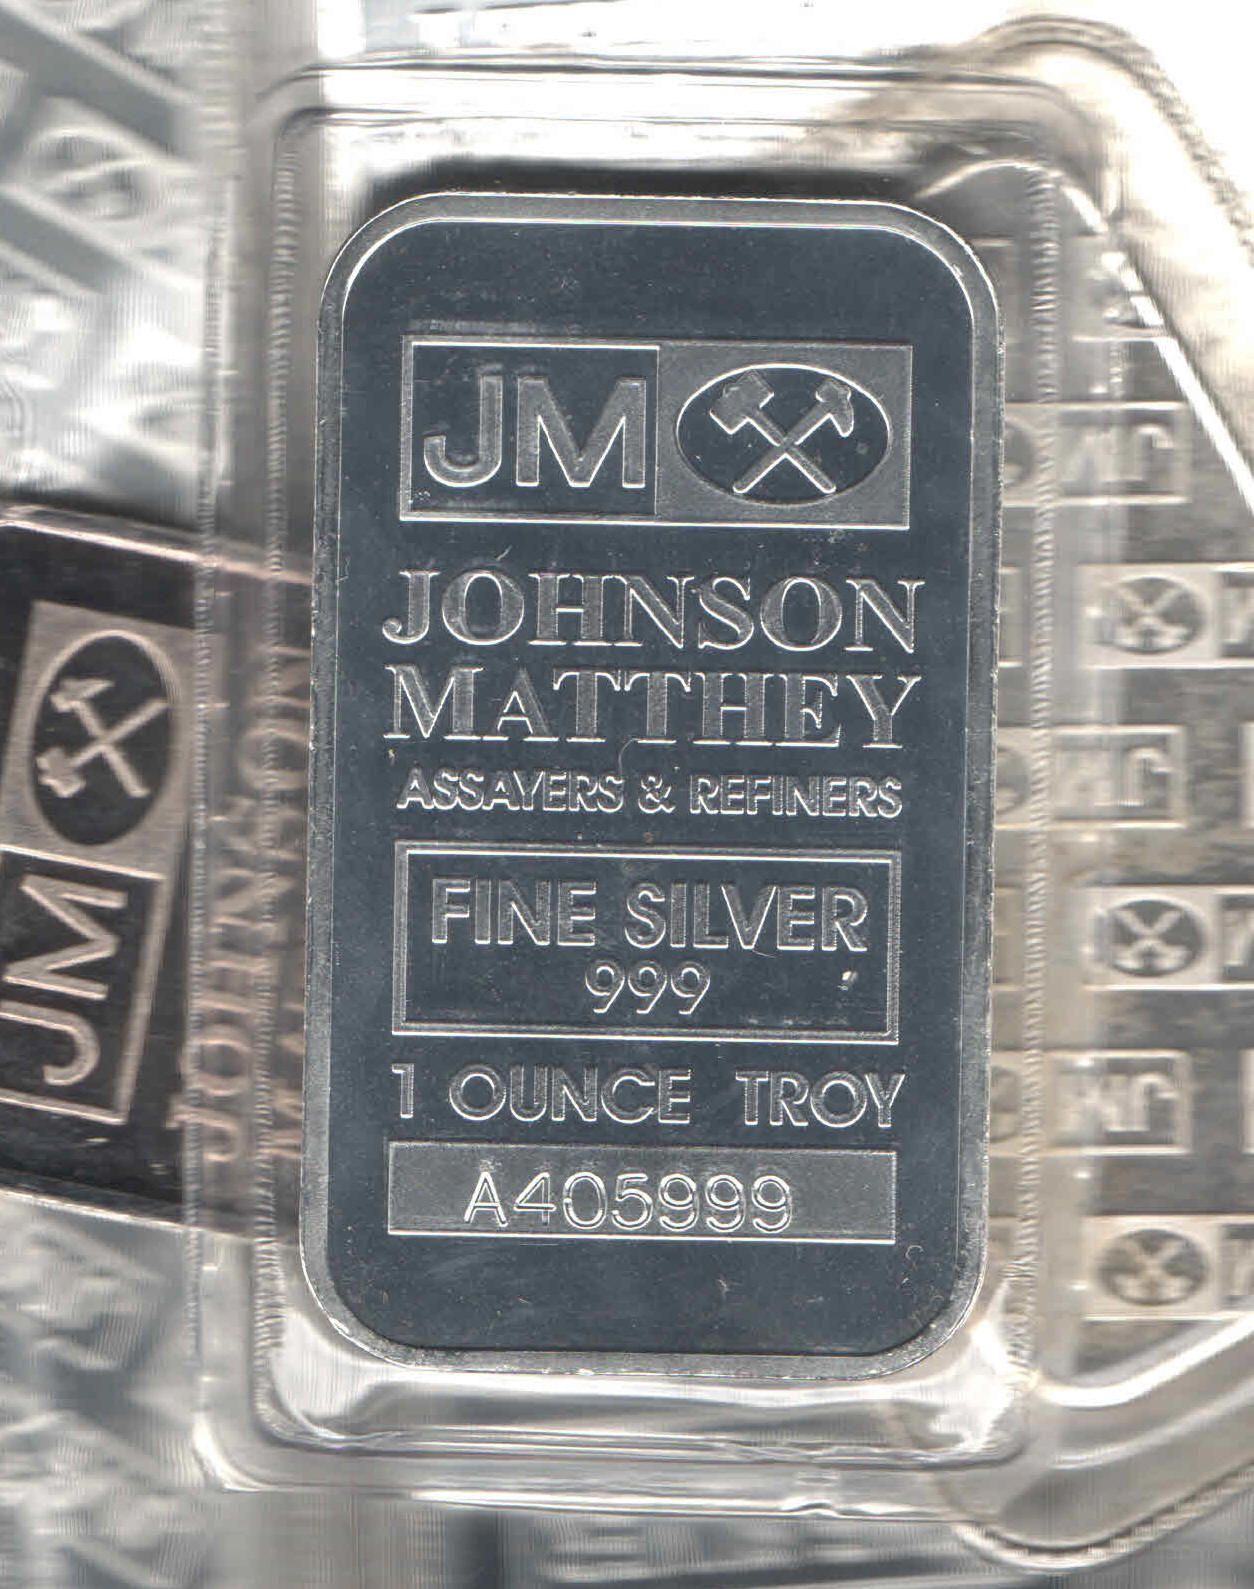 Bars And Silver Rounds 1 Oz Solid Silver One Troy Ounce Silver Silver Rounds Silver Bullion